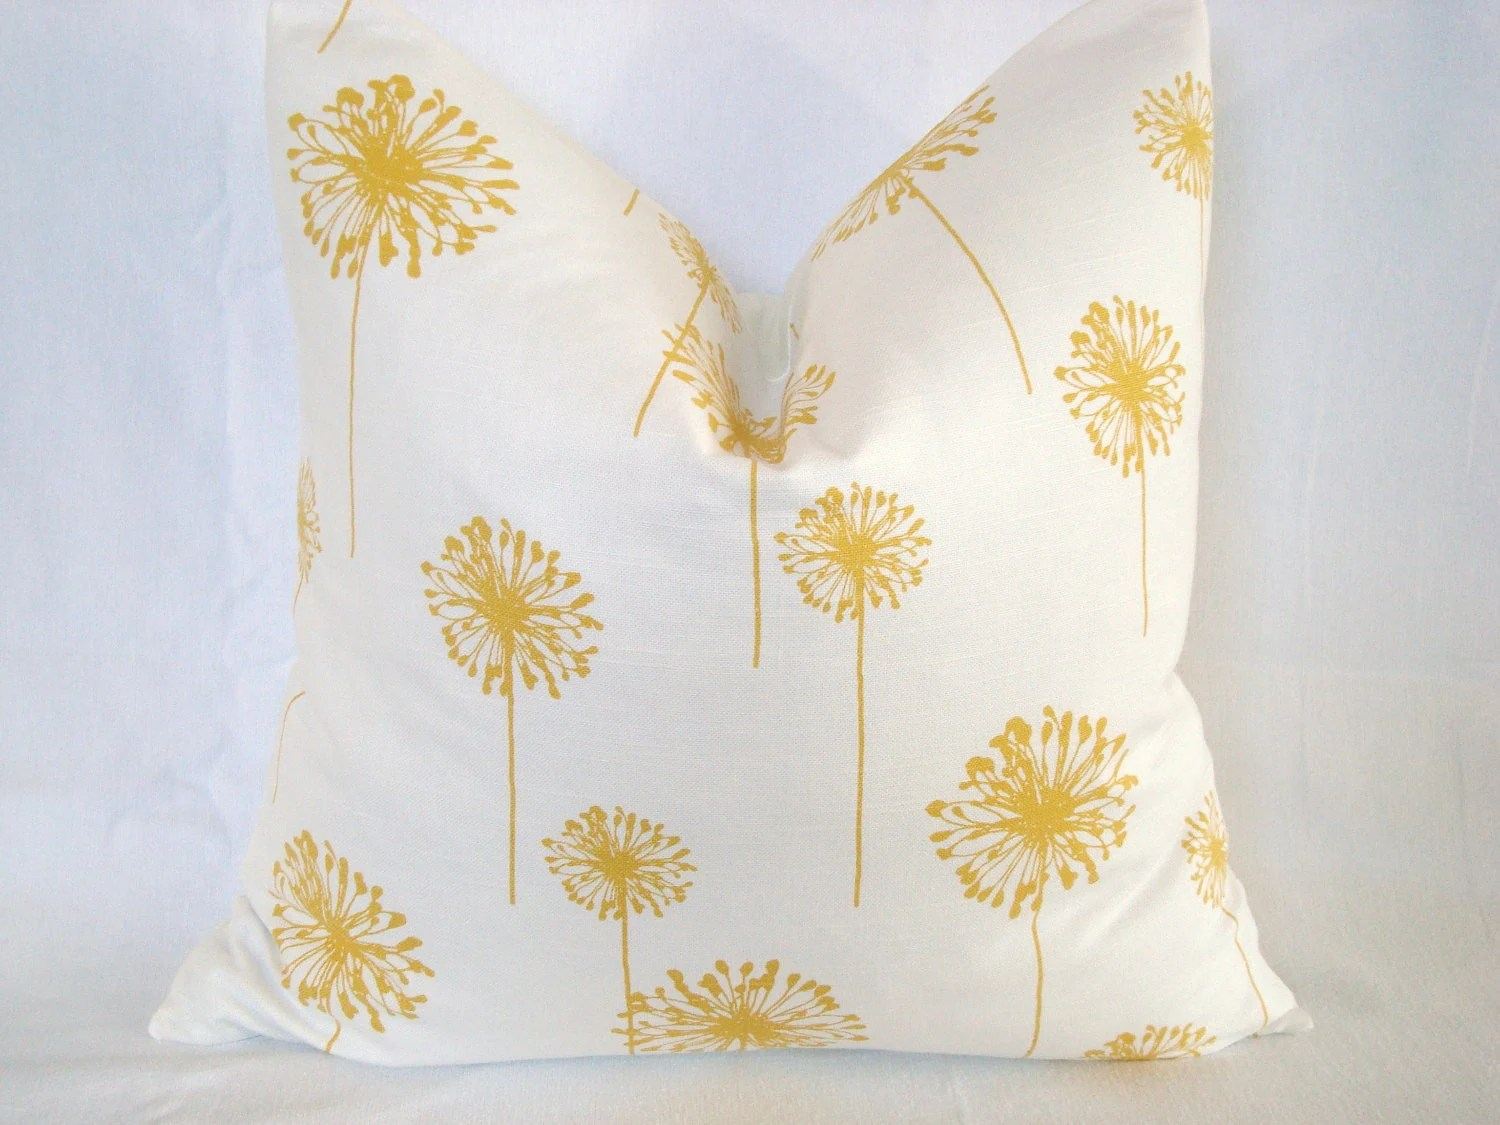 20X20 Premier Yellow and White Dandelion Print - CreativeTouchDecor